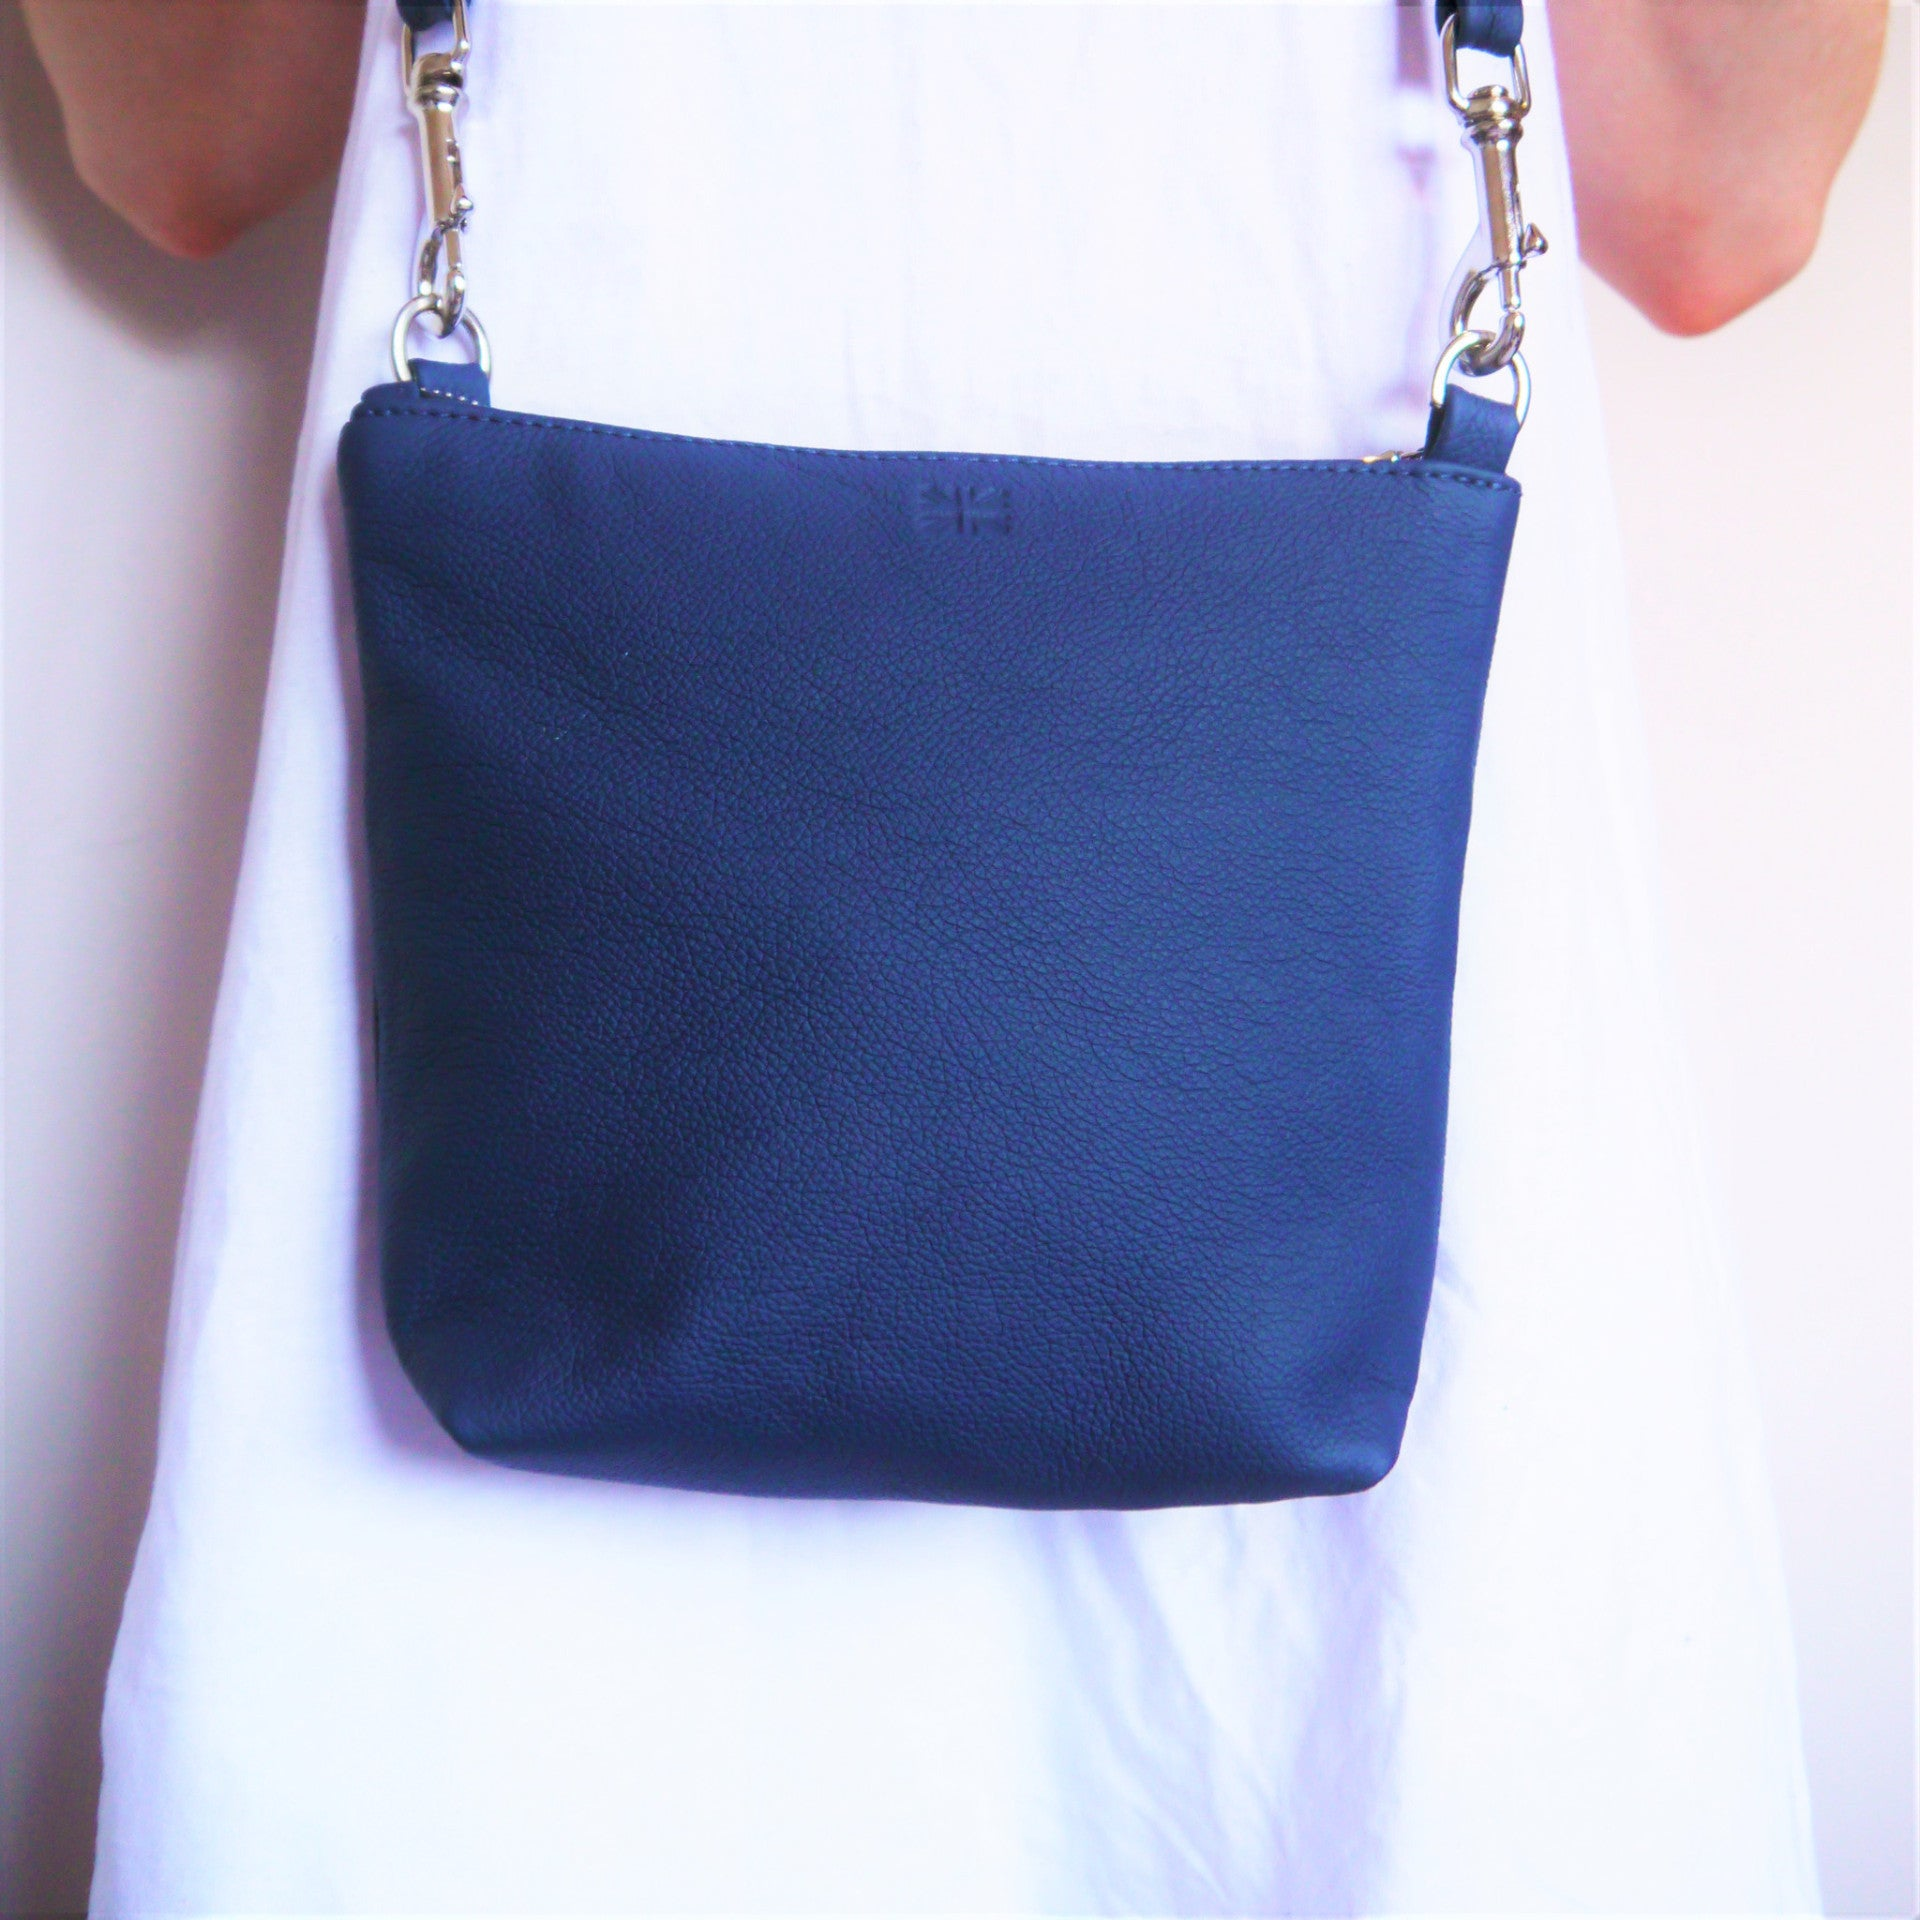 S/S 16 Daisy Across Body Bag - Navy